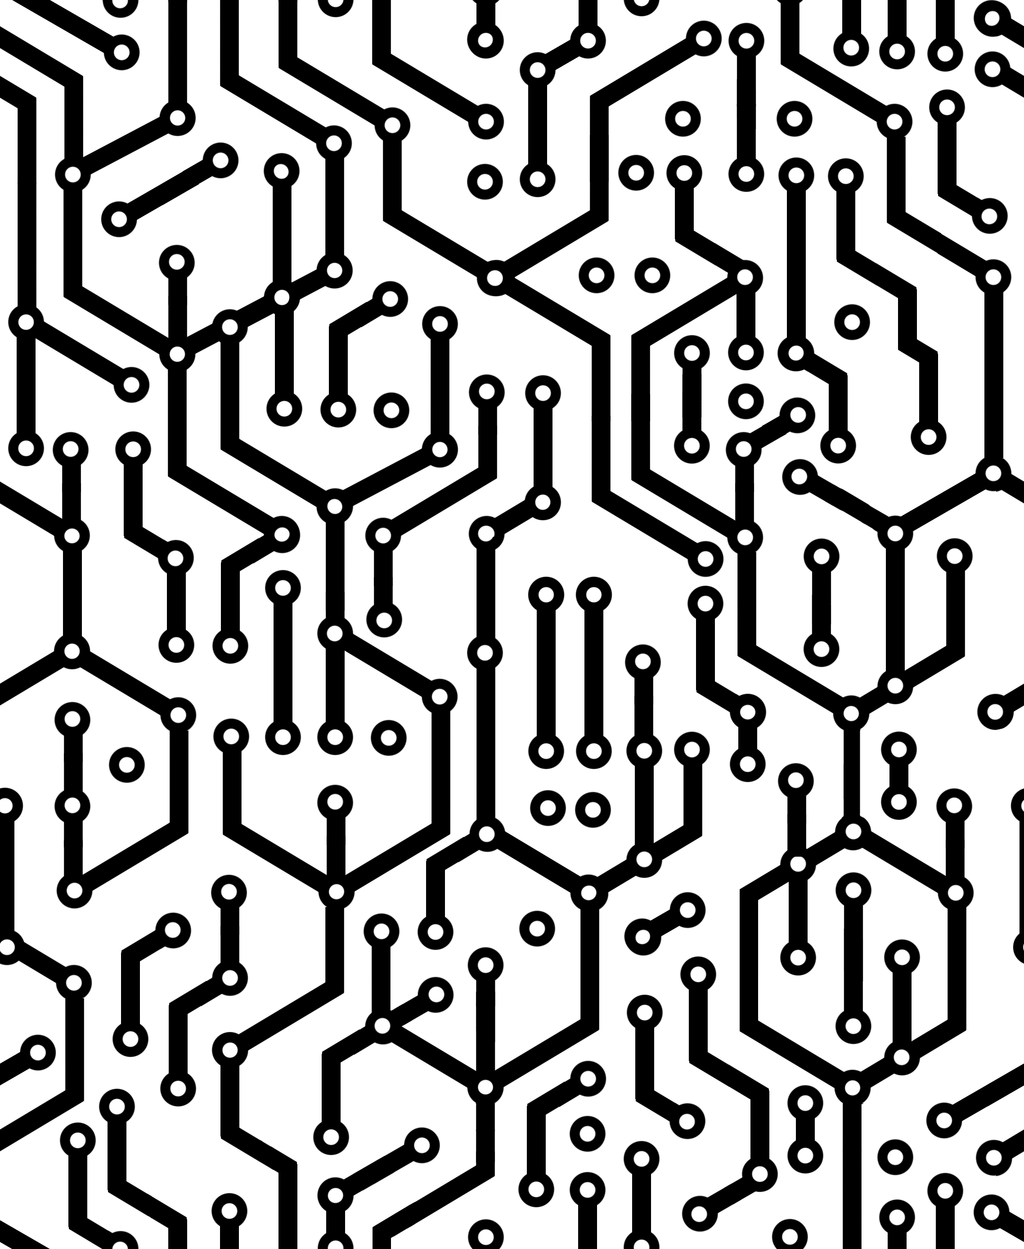 Circuitry Png, png collections at sccpre.cat.